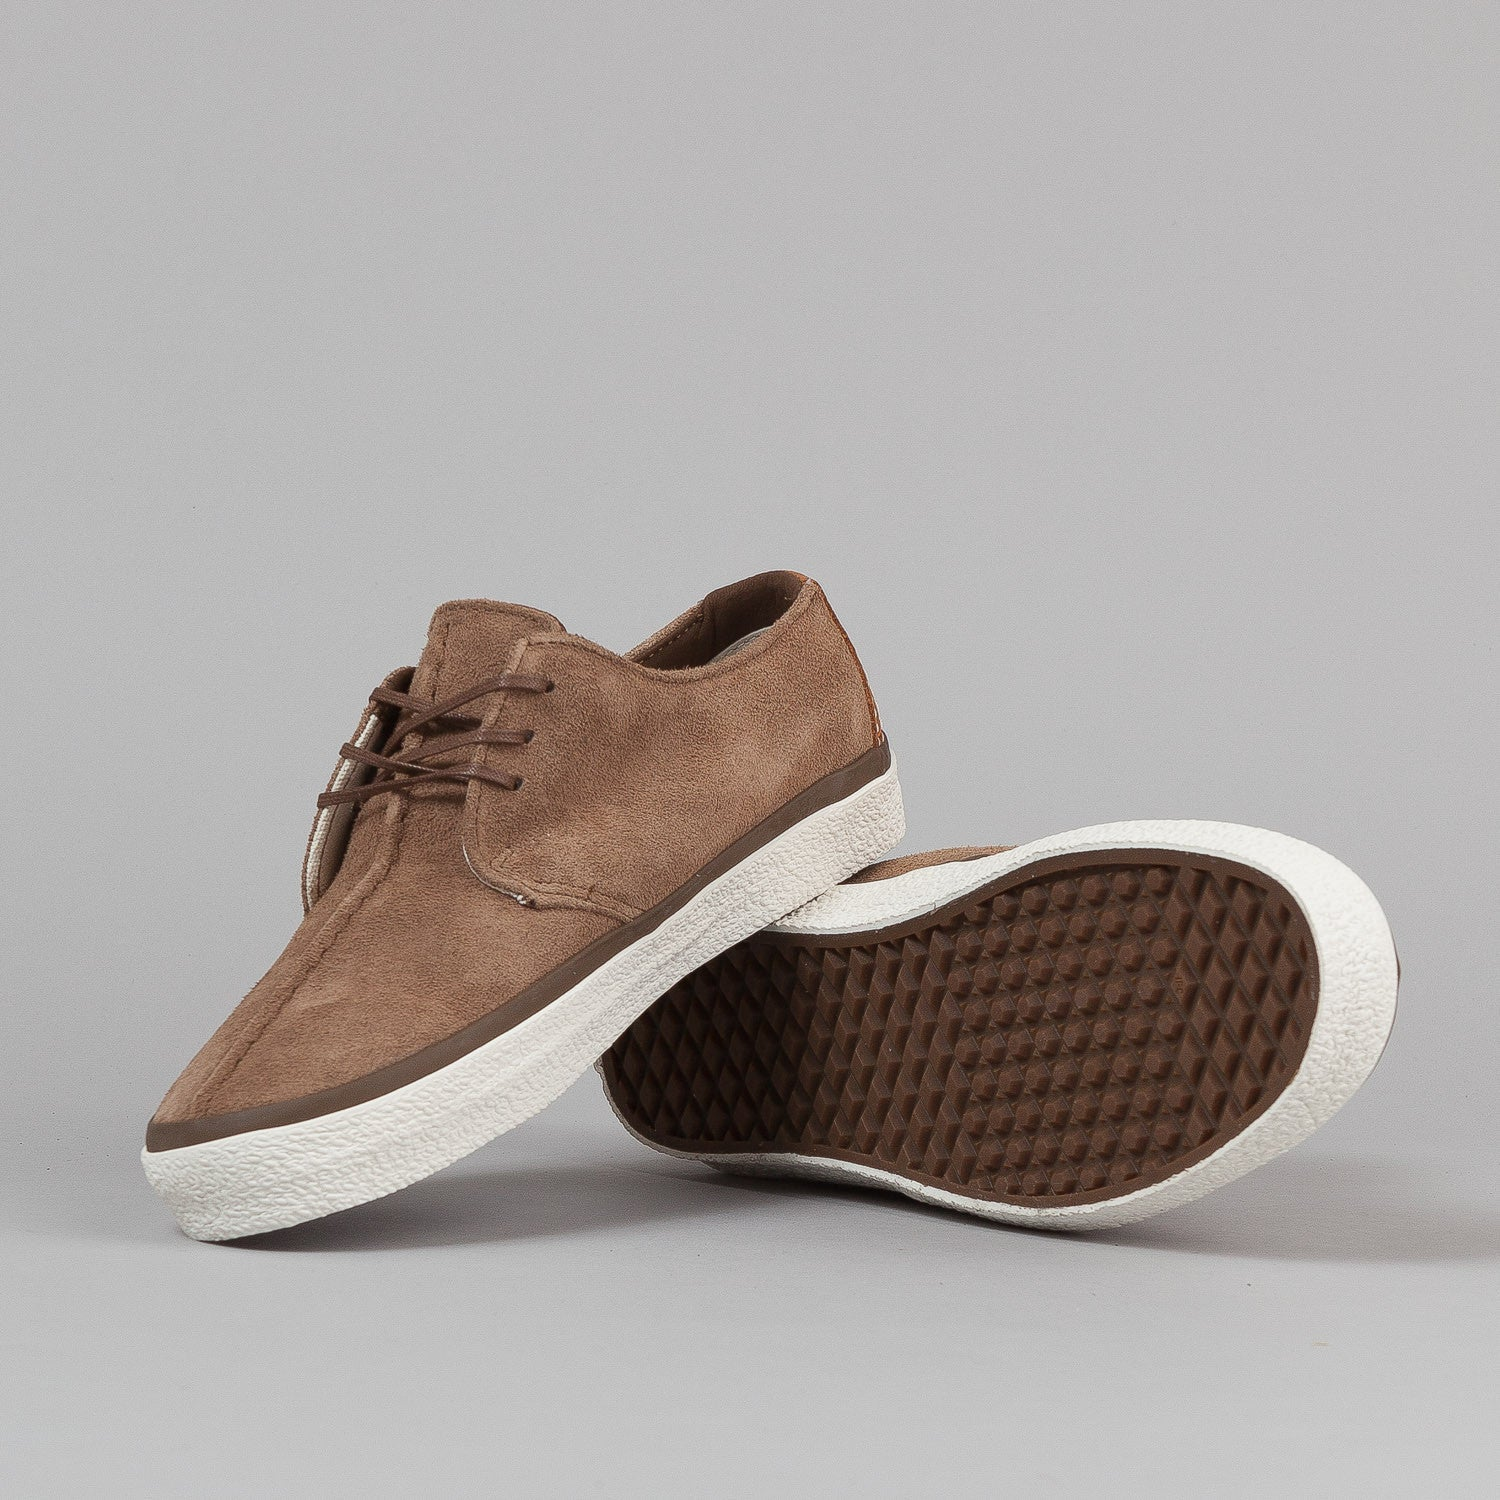 Vans Carrilo CA Shoes - Desert Palm